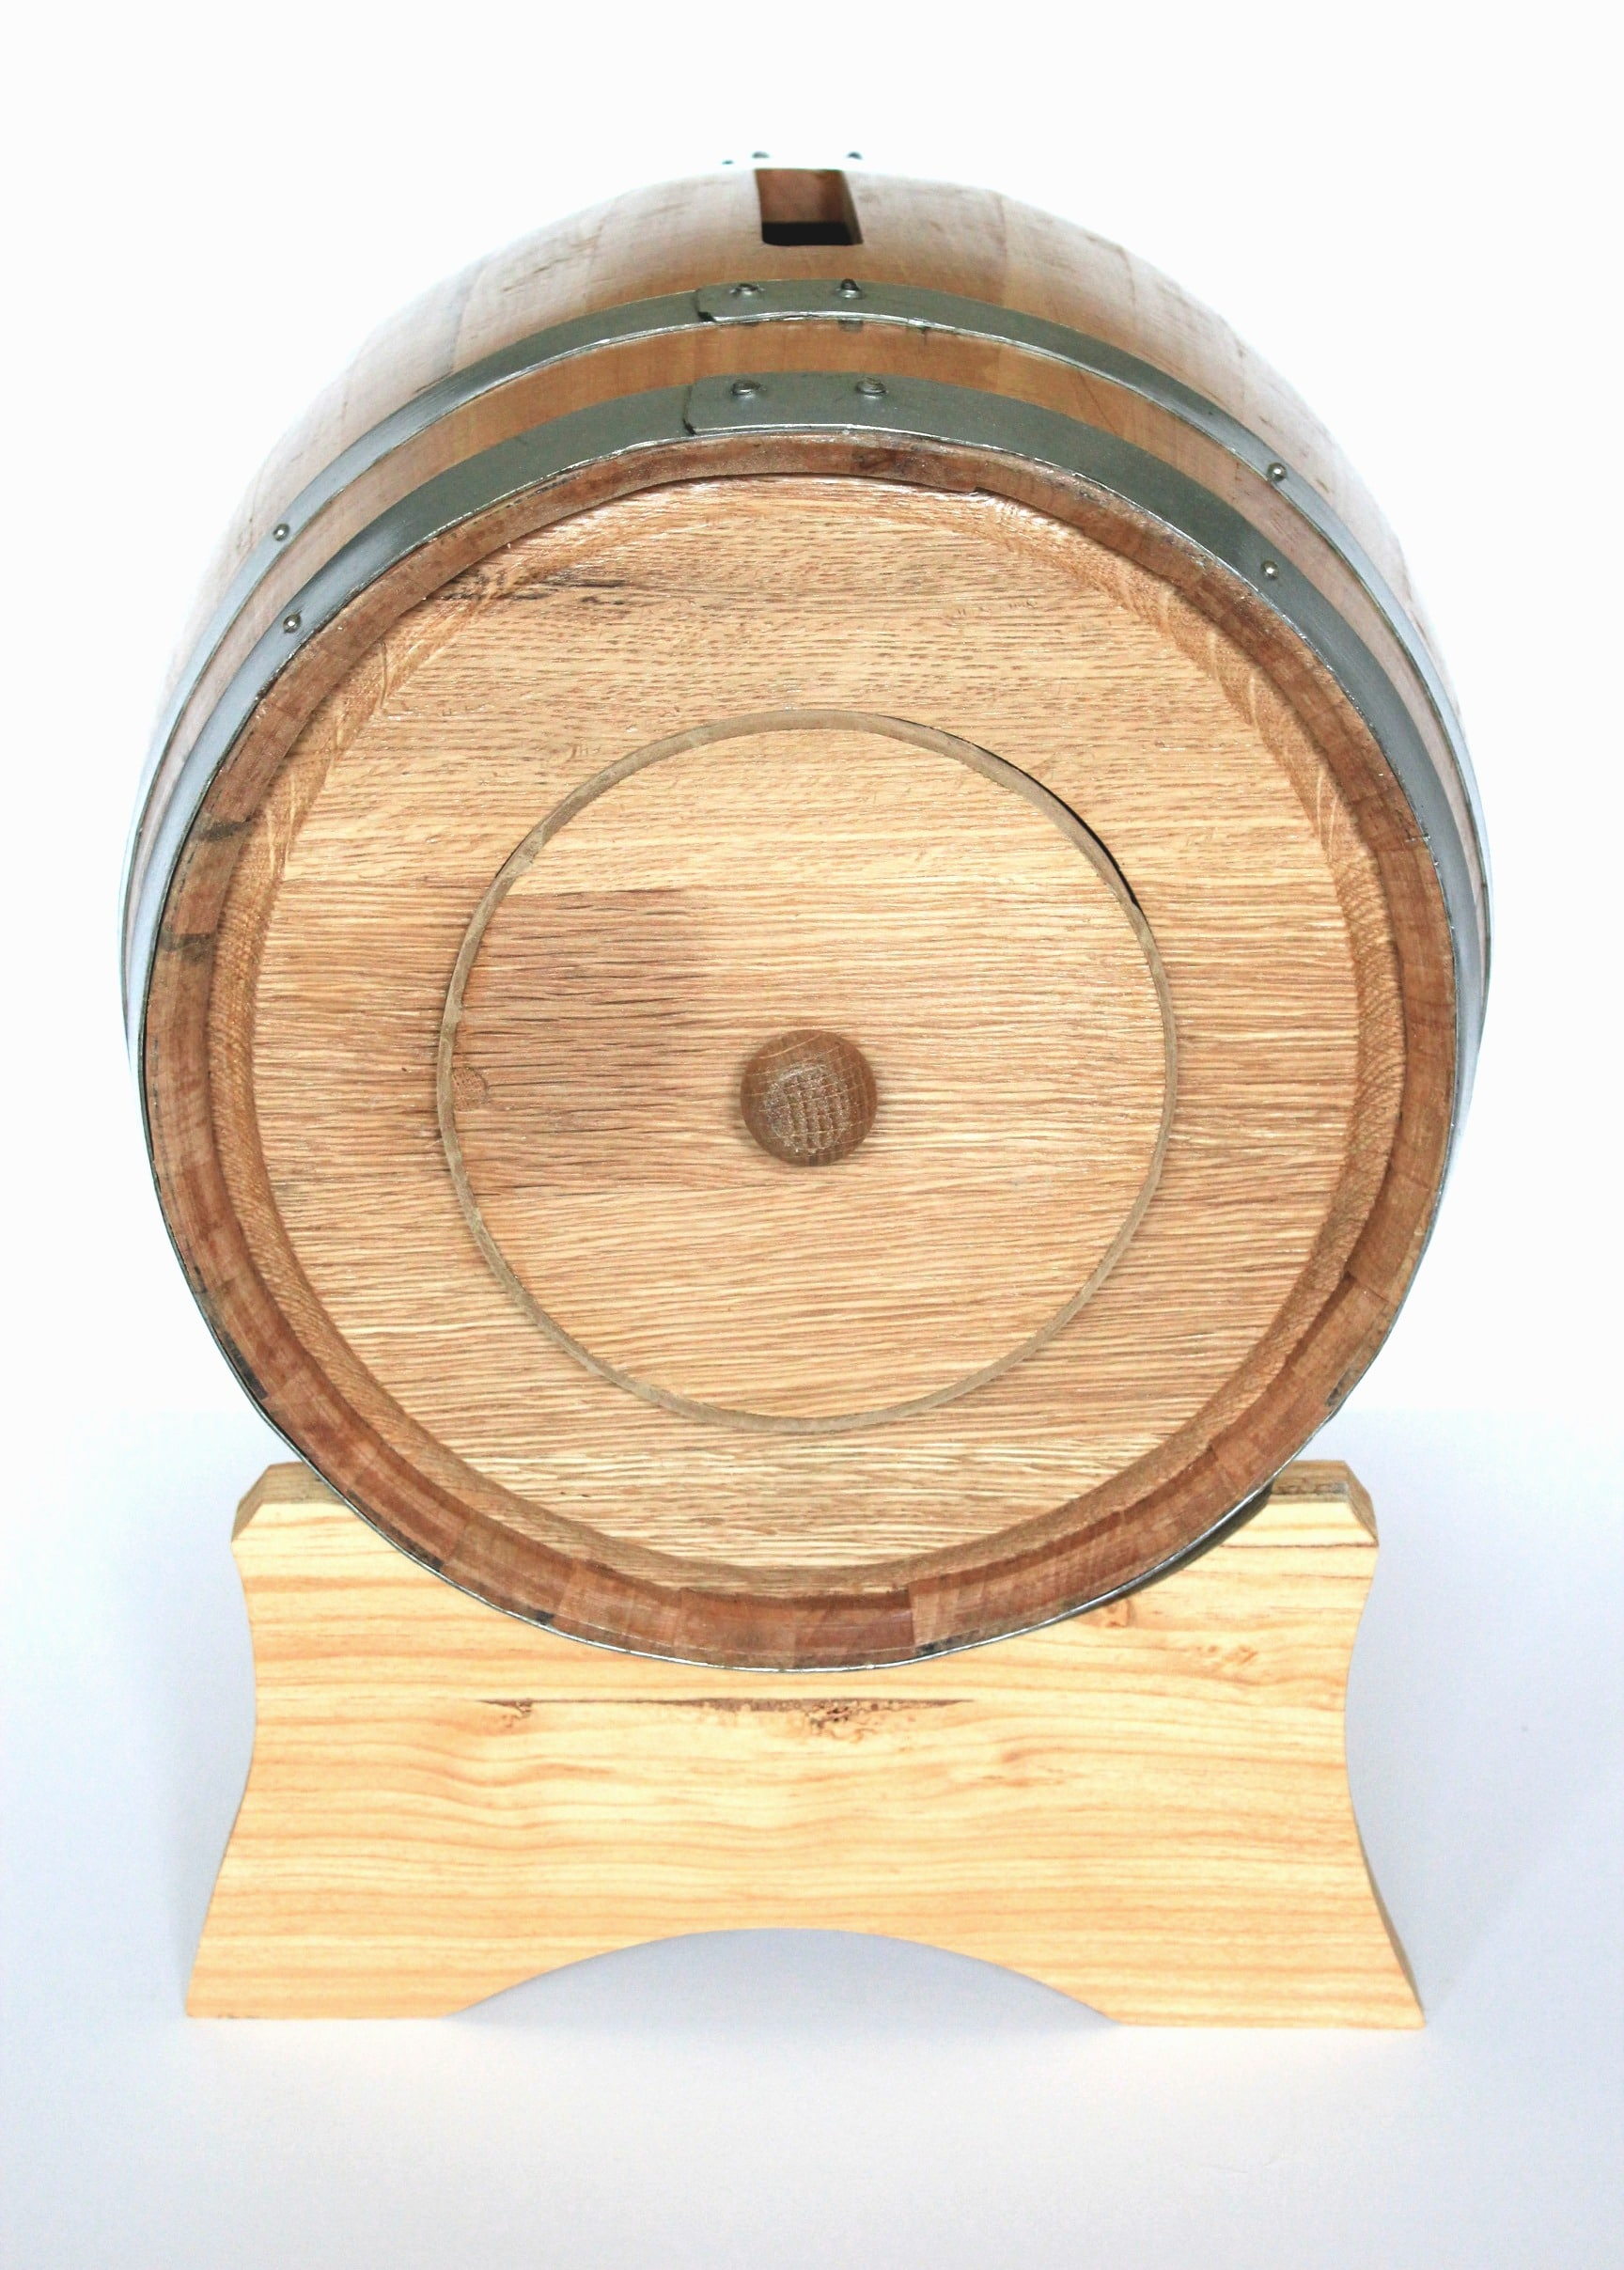 Back of card holder barrel with closed trap door